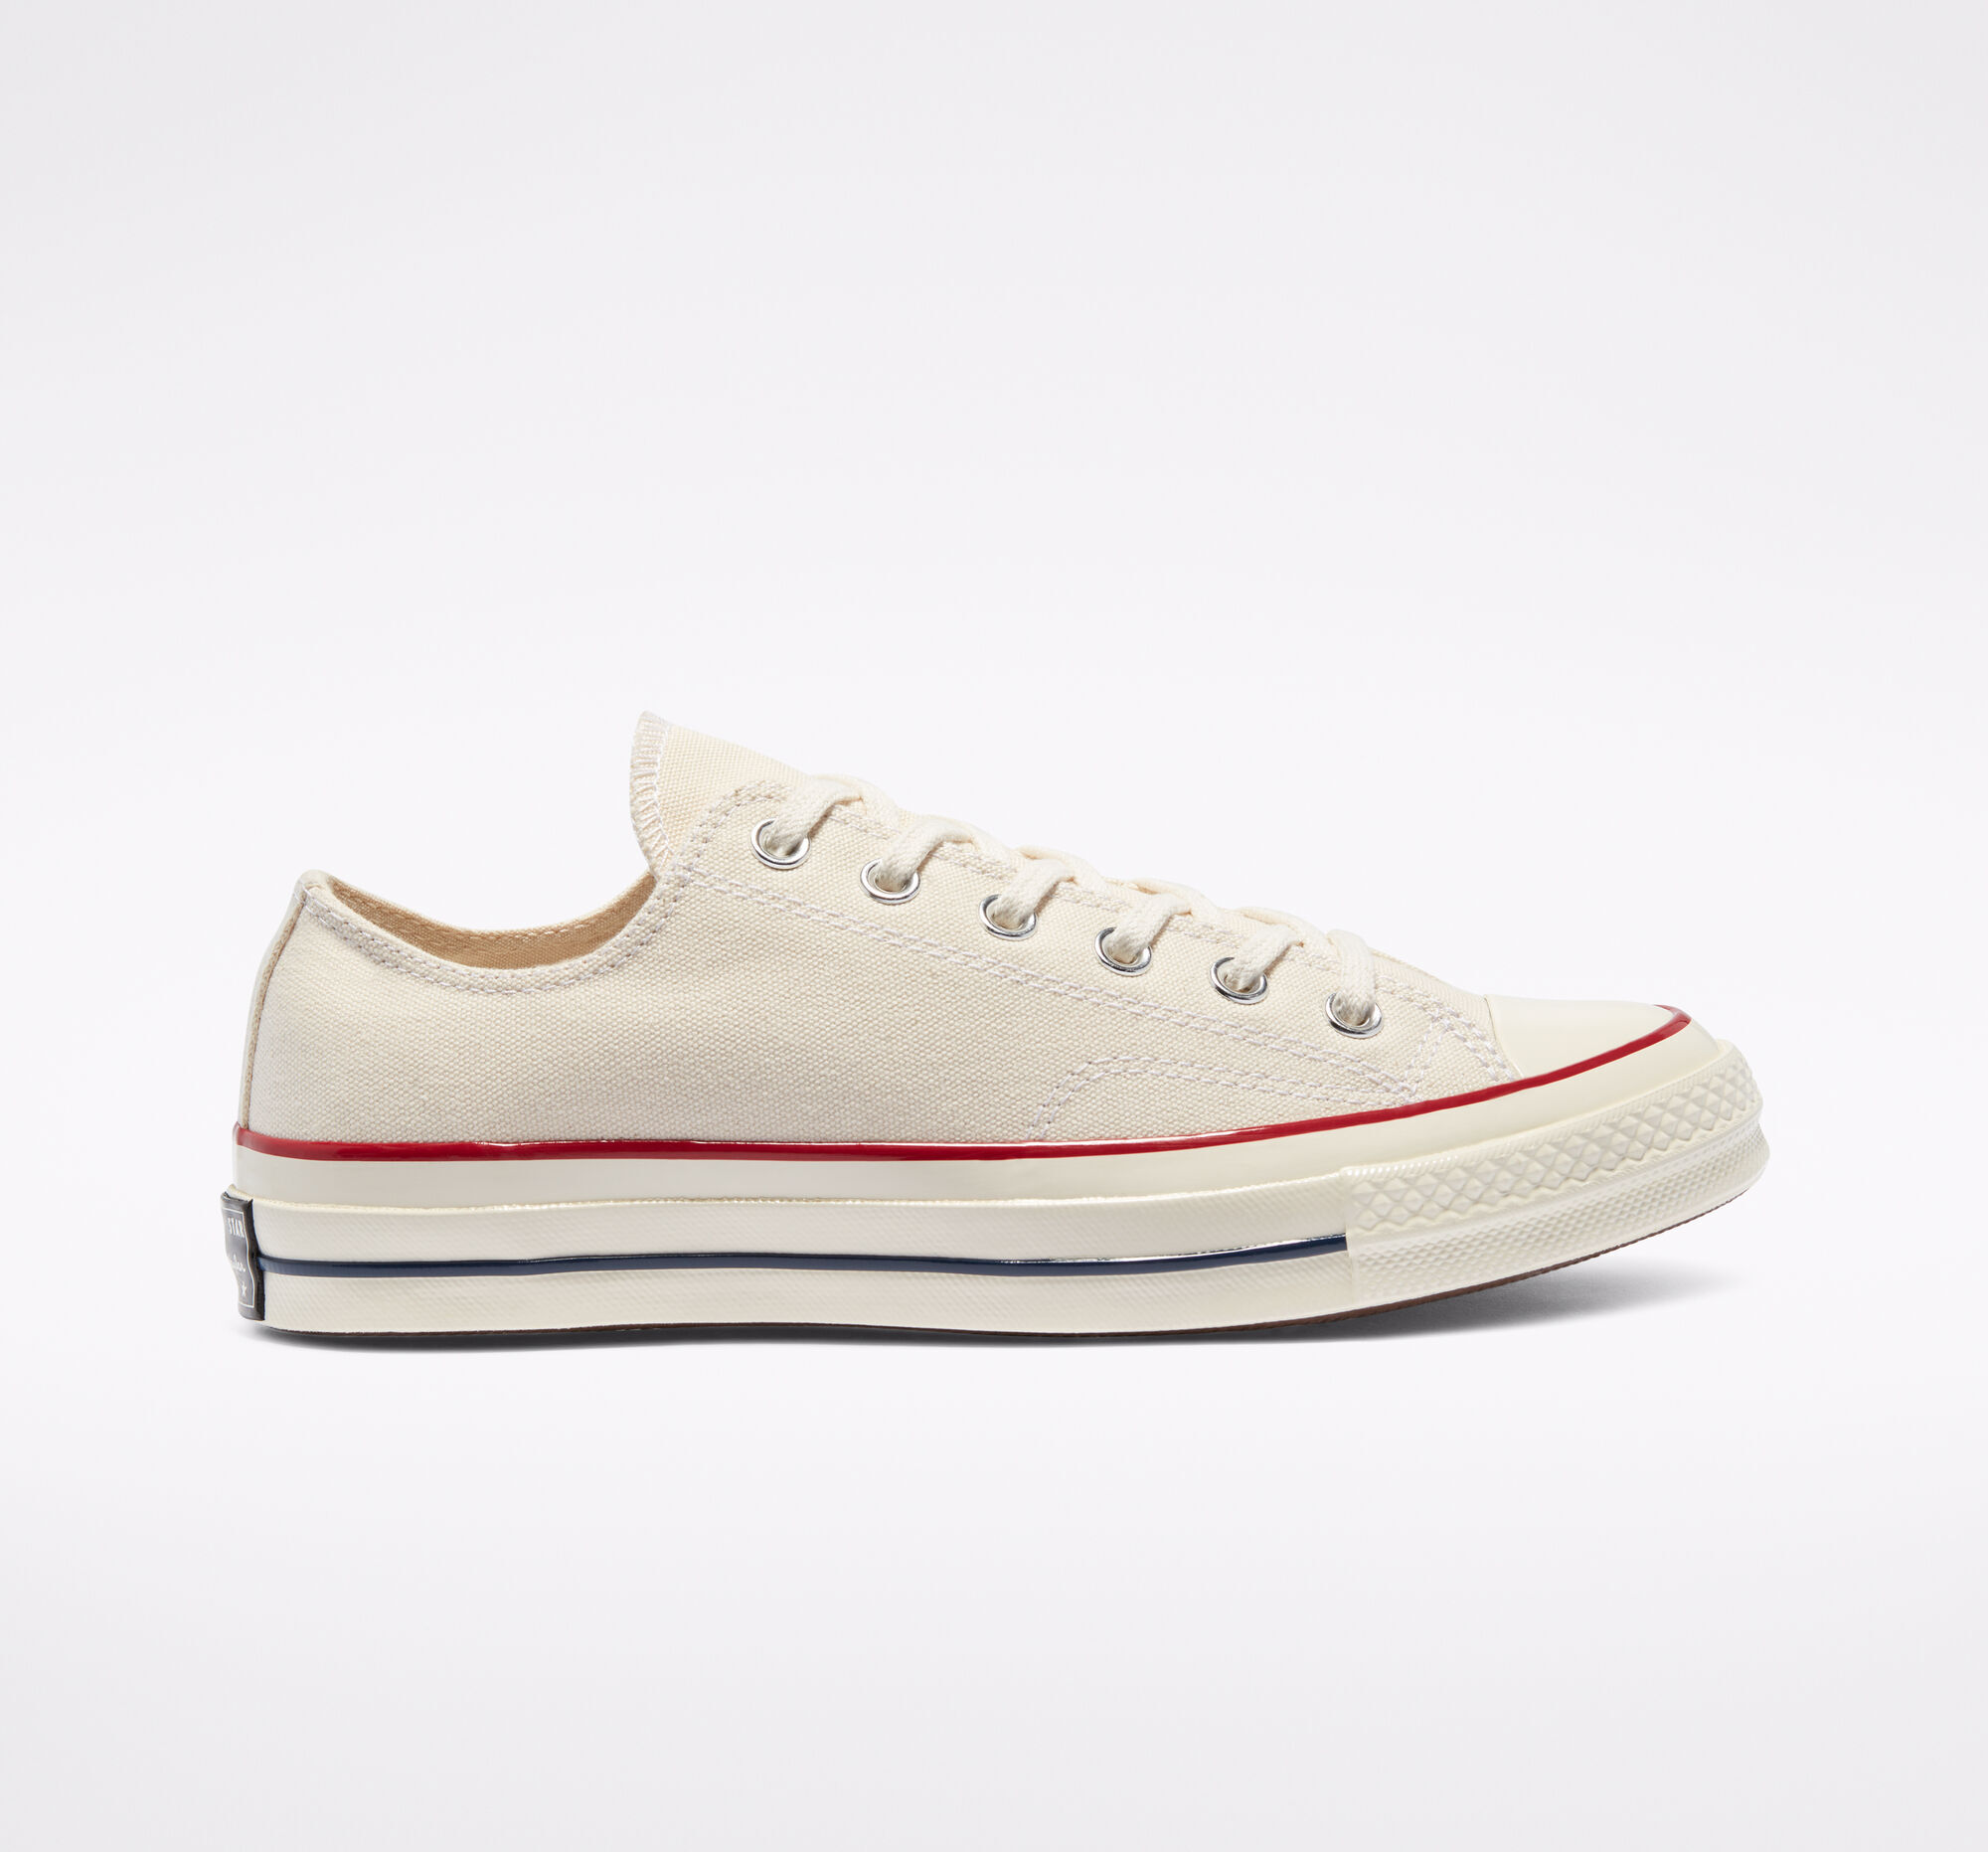 Chuck 70 Washed Canvas Low Top